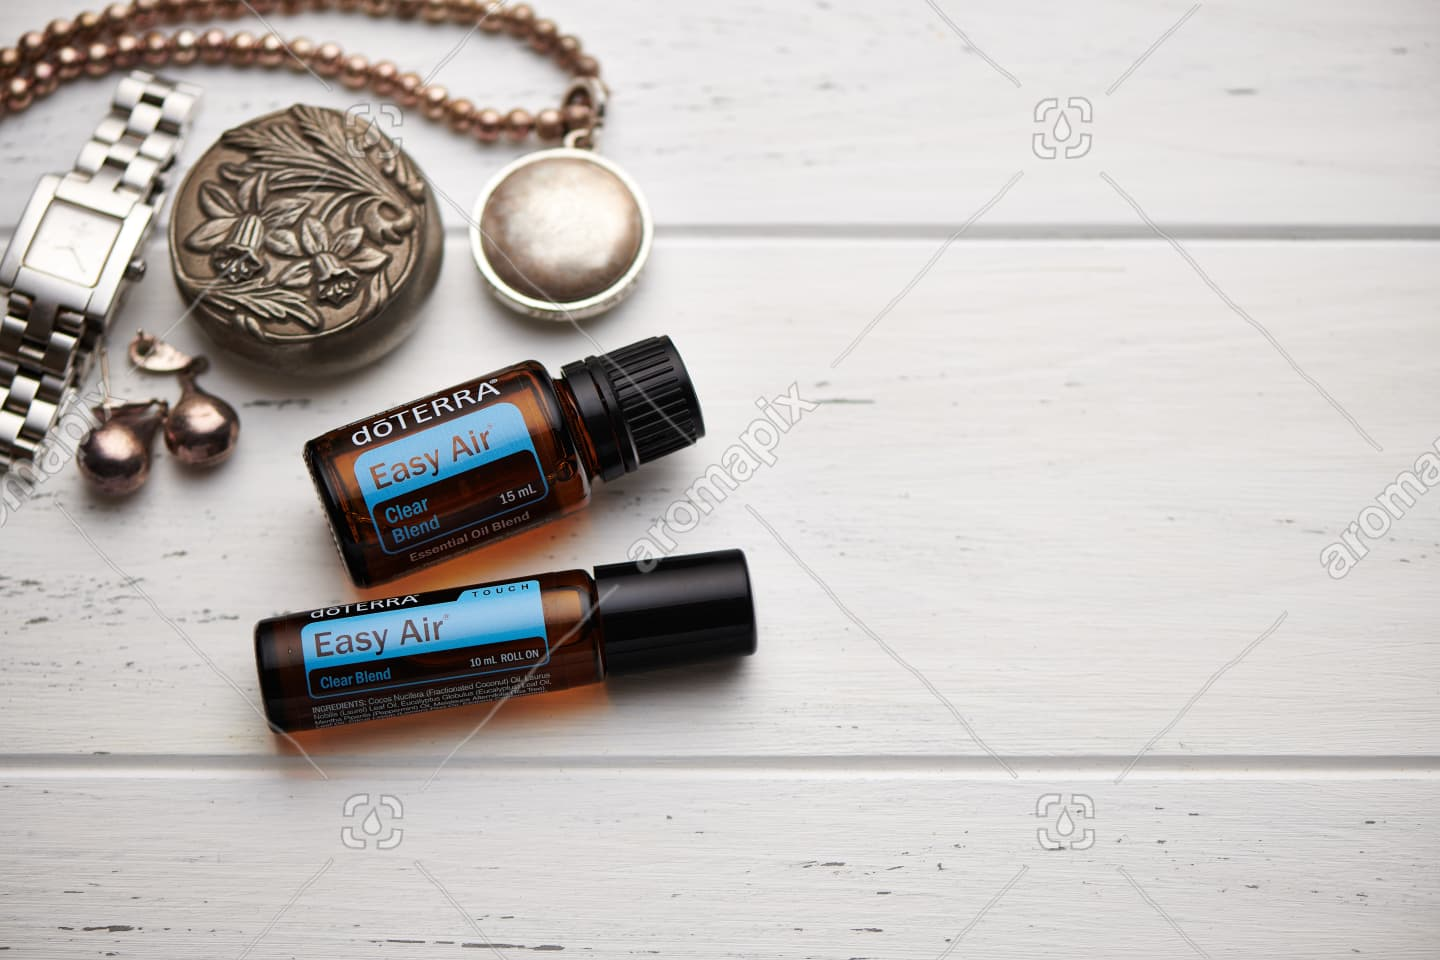 doTERRA Easy Air and Easy Air Touch on rustic background